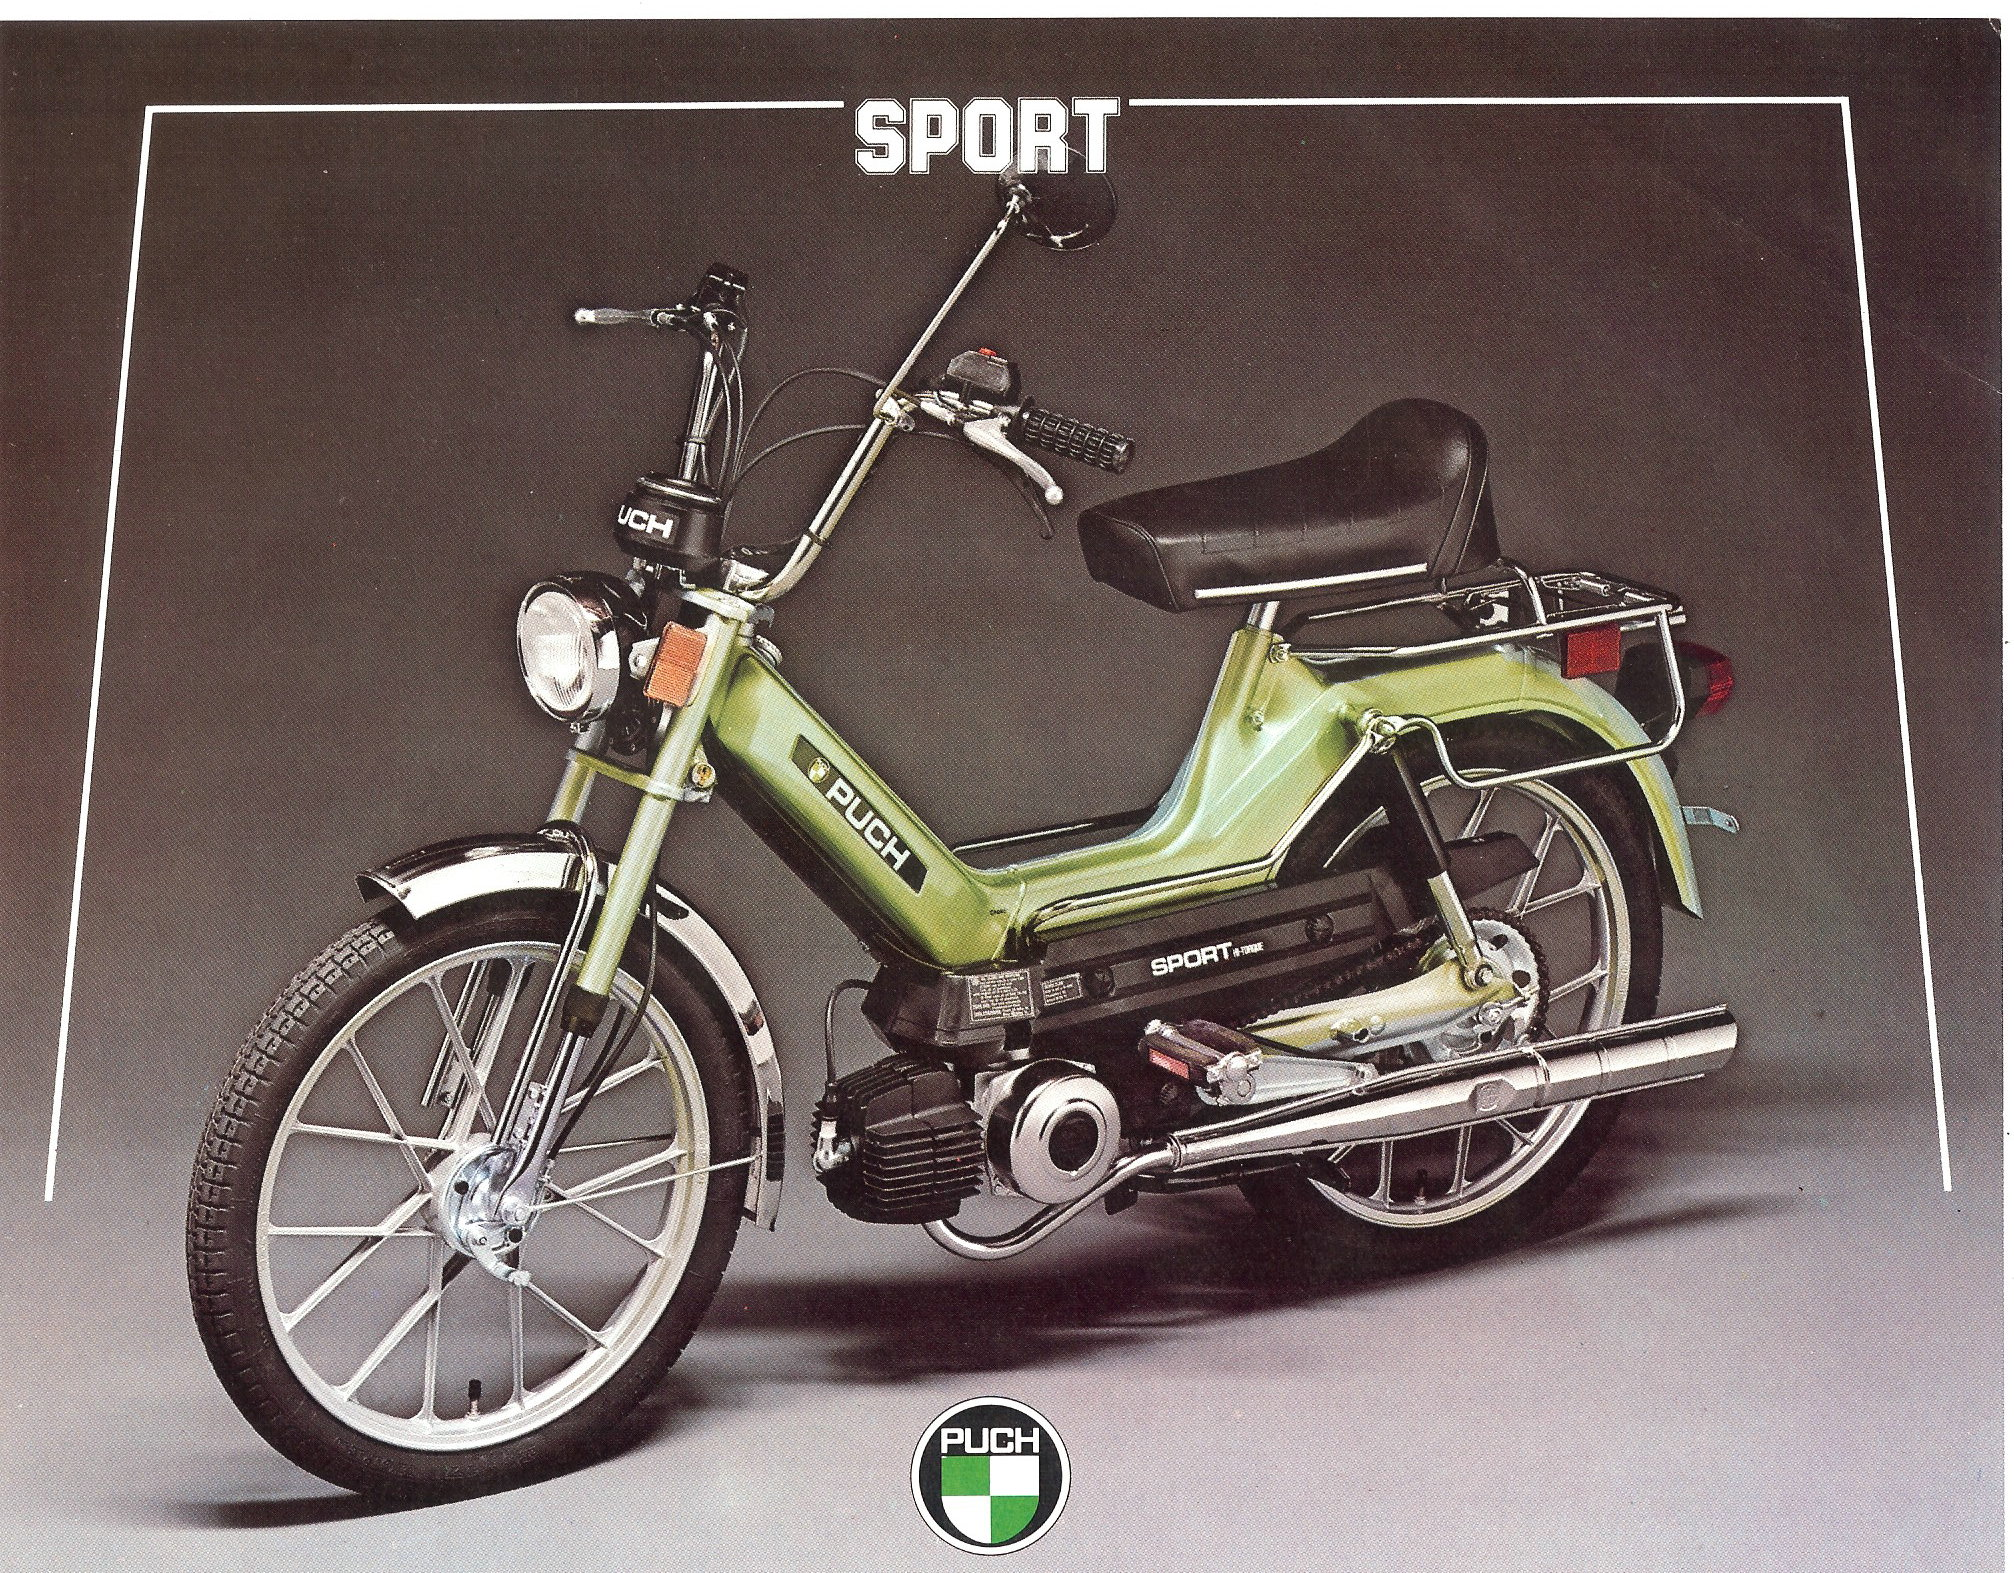 Puch Maxi Sport images #158541